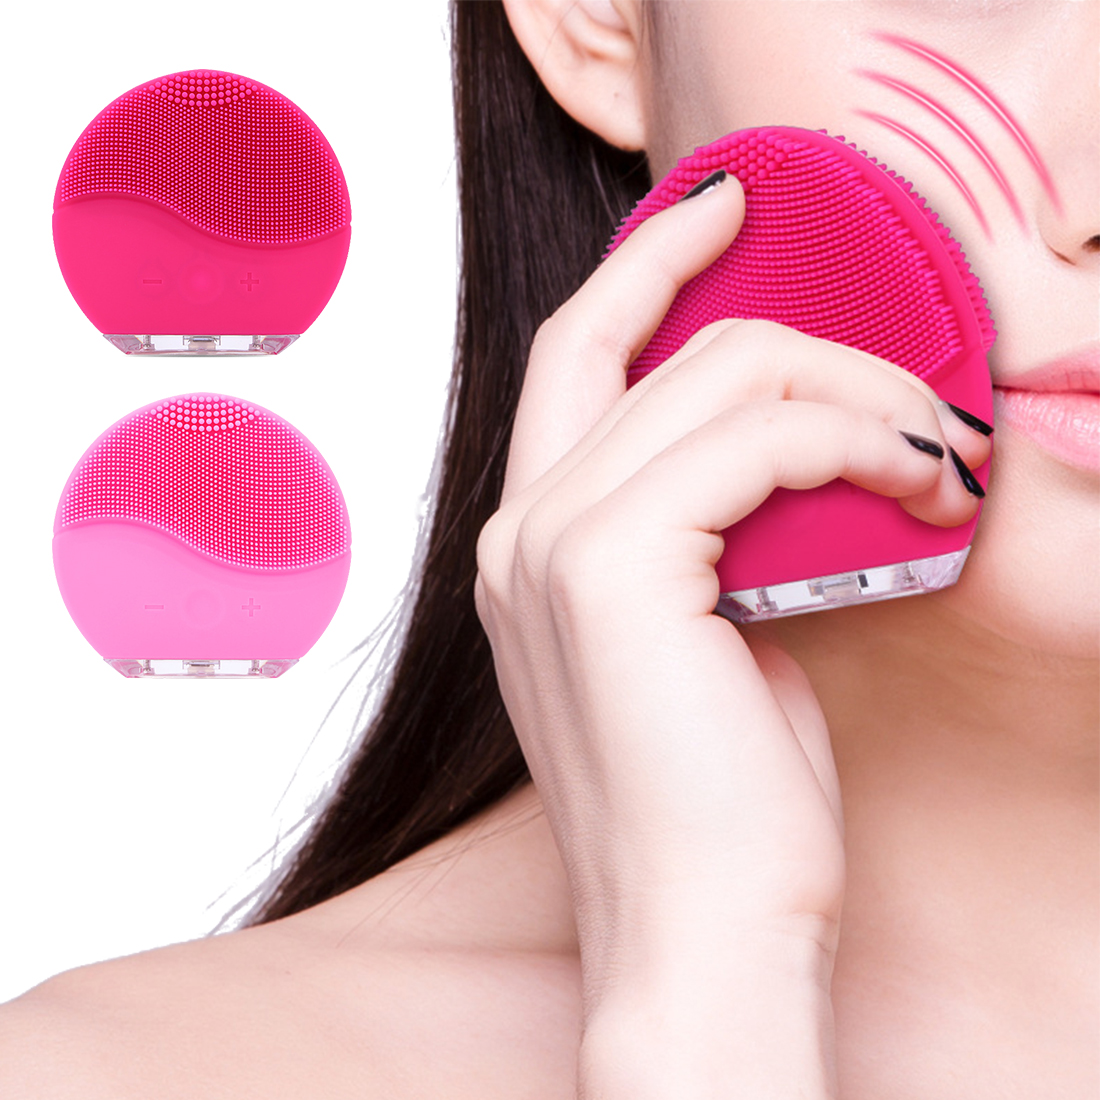 Super Soft Silicone Waterproof Ultrasonic Pore Clean Device Electric Facial Brush Cleaner Facial Skin Care Spa Massager